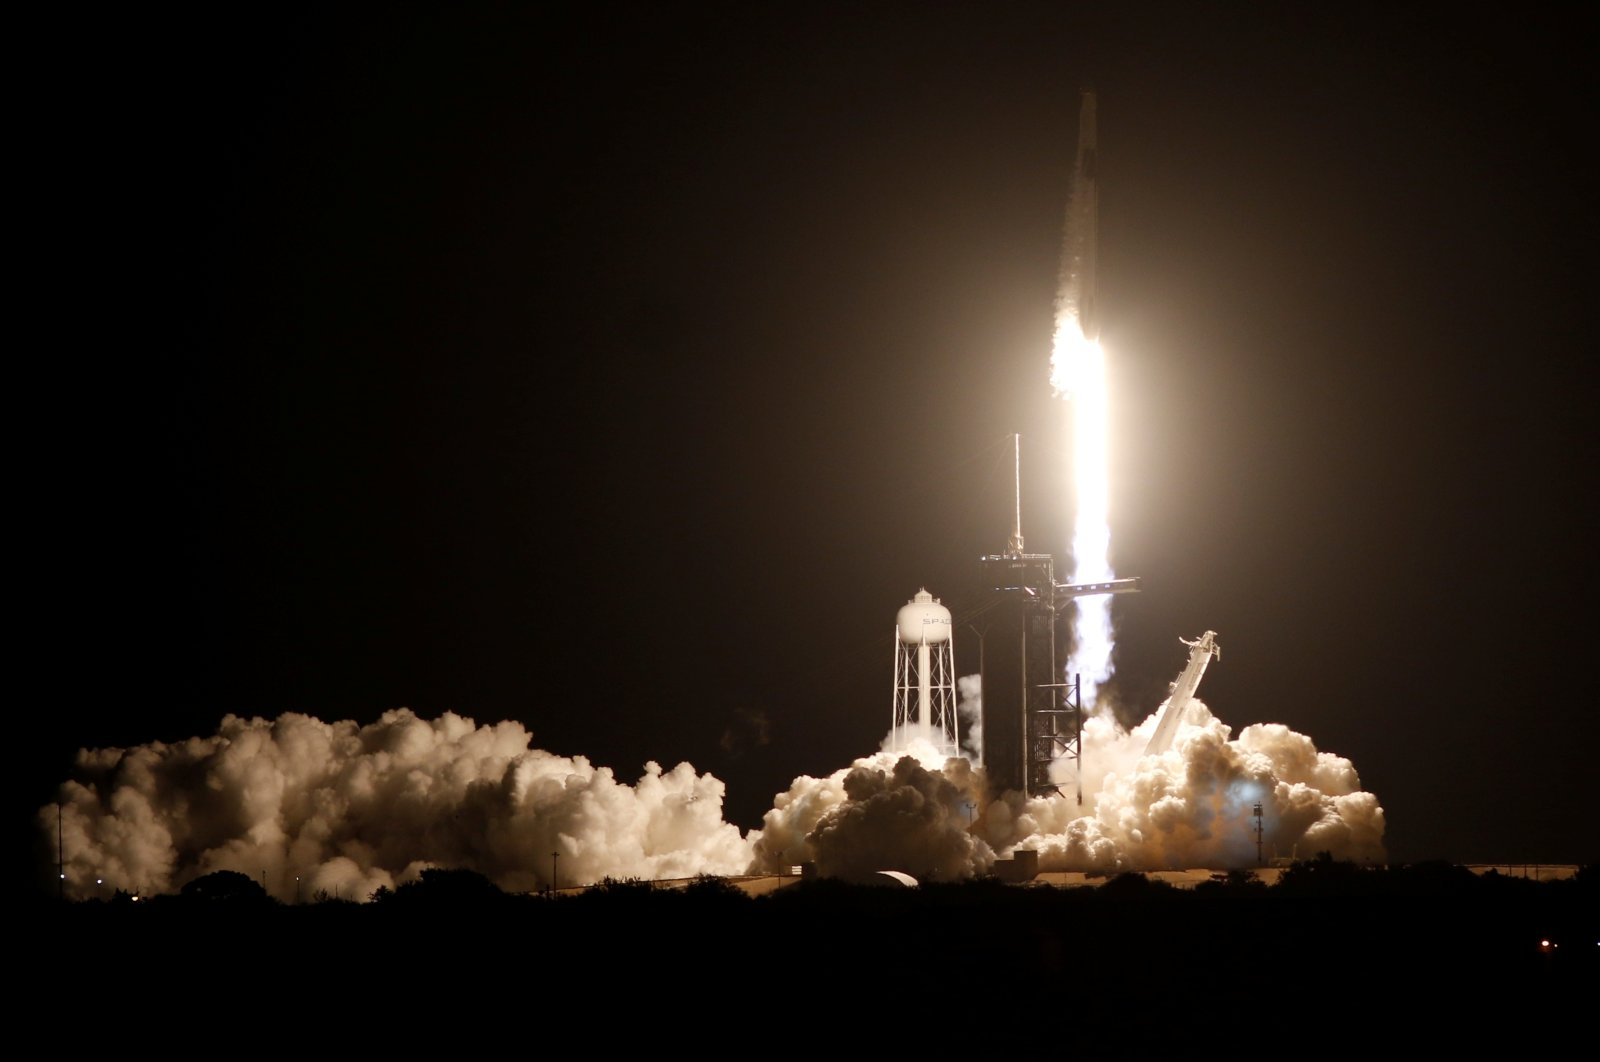 A SpaceX Falcon 9 rocket, with the Crew Dragon capsule, is launched carrying four astronauts on the first operational NASA commercial crew mission at Kennedy Space Center in Cape Canaveral, Florida, U.S. Nov. 15, 2020. (Reuters Photo)